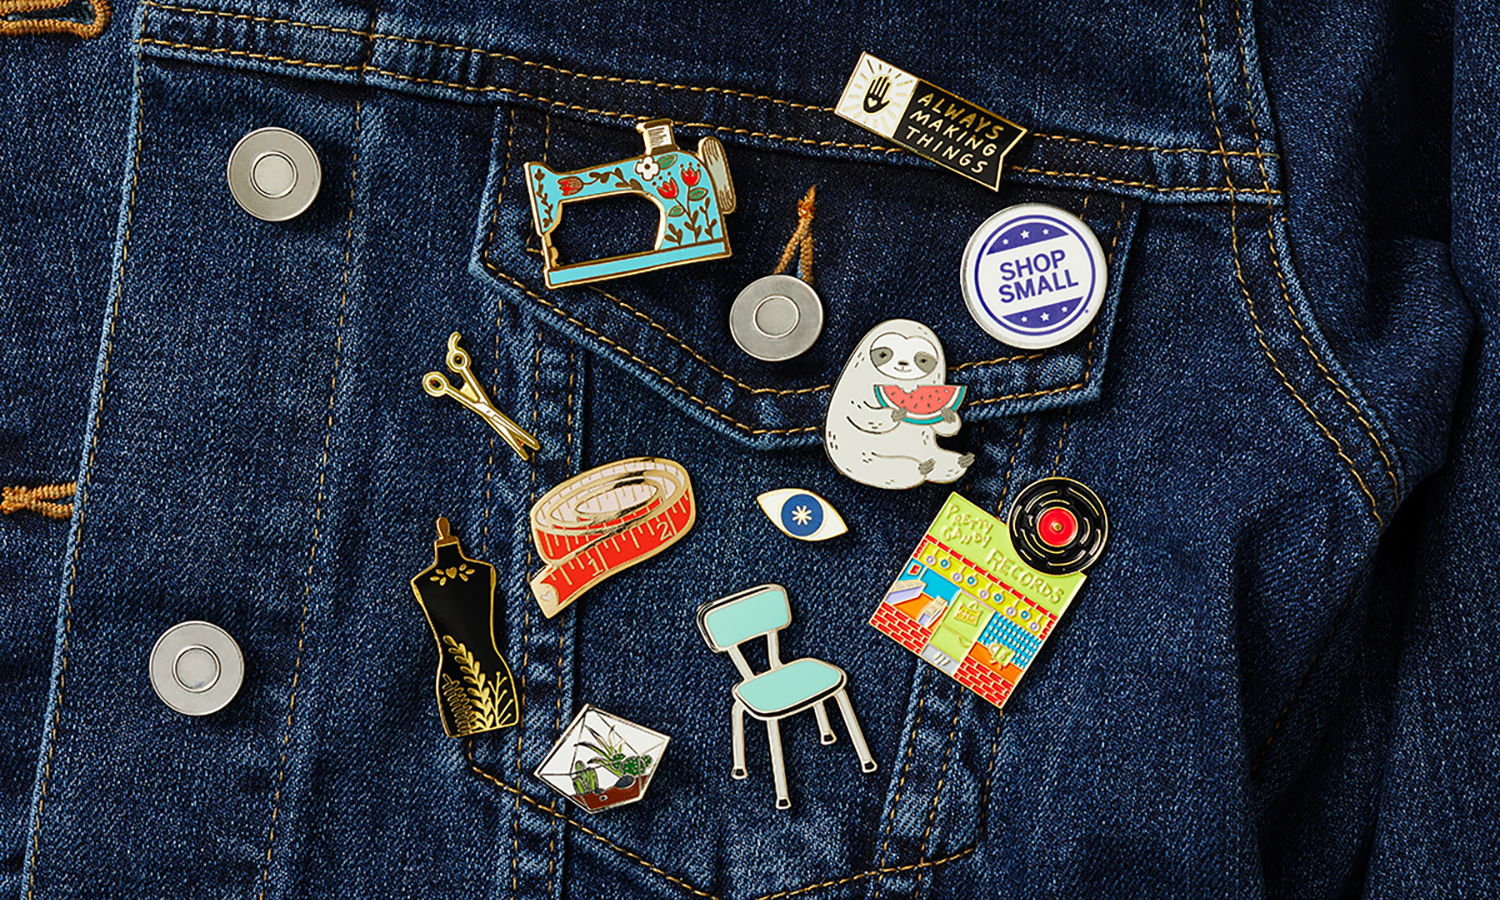 Shop_Small_Pins